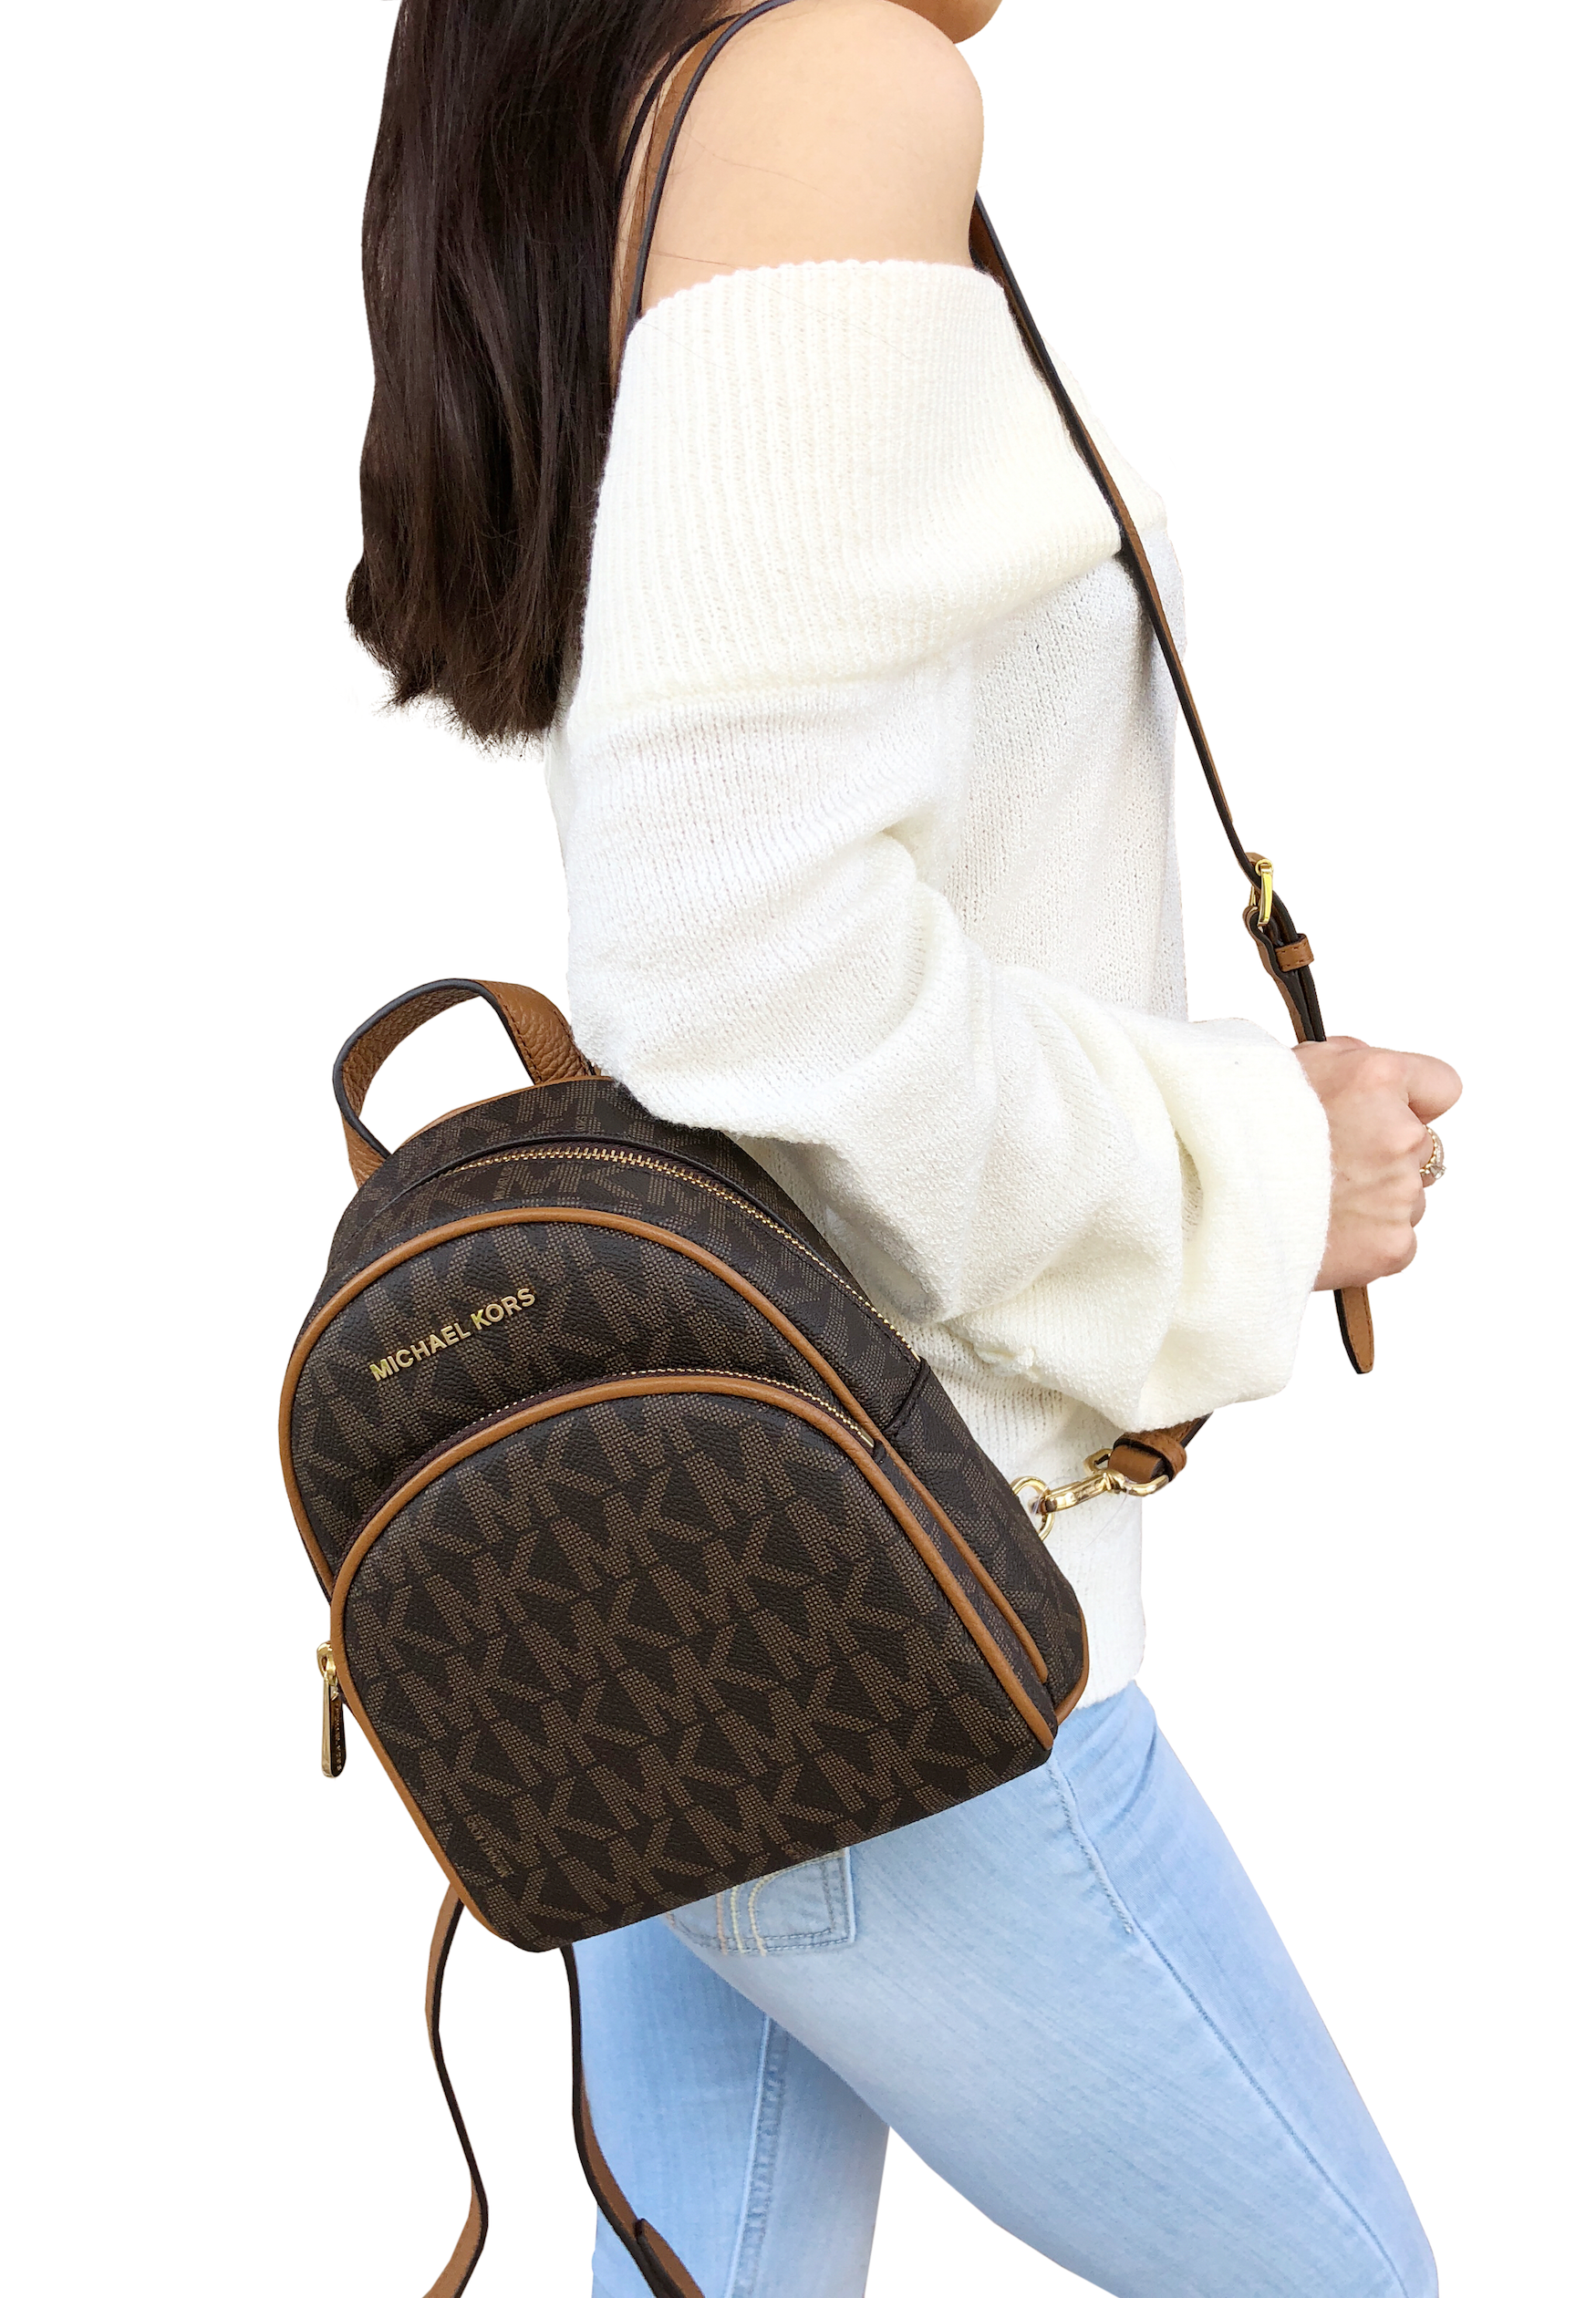 e177842f2609 Michael Kors Abbey Mini Backpack Crossbody Brown MK Signature Acorn Extra  Small